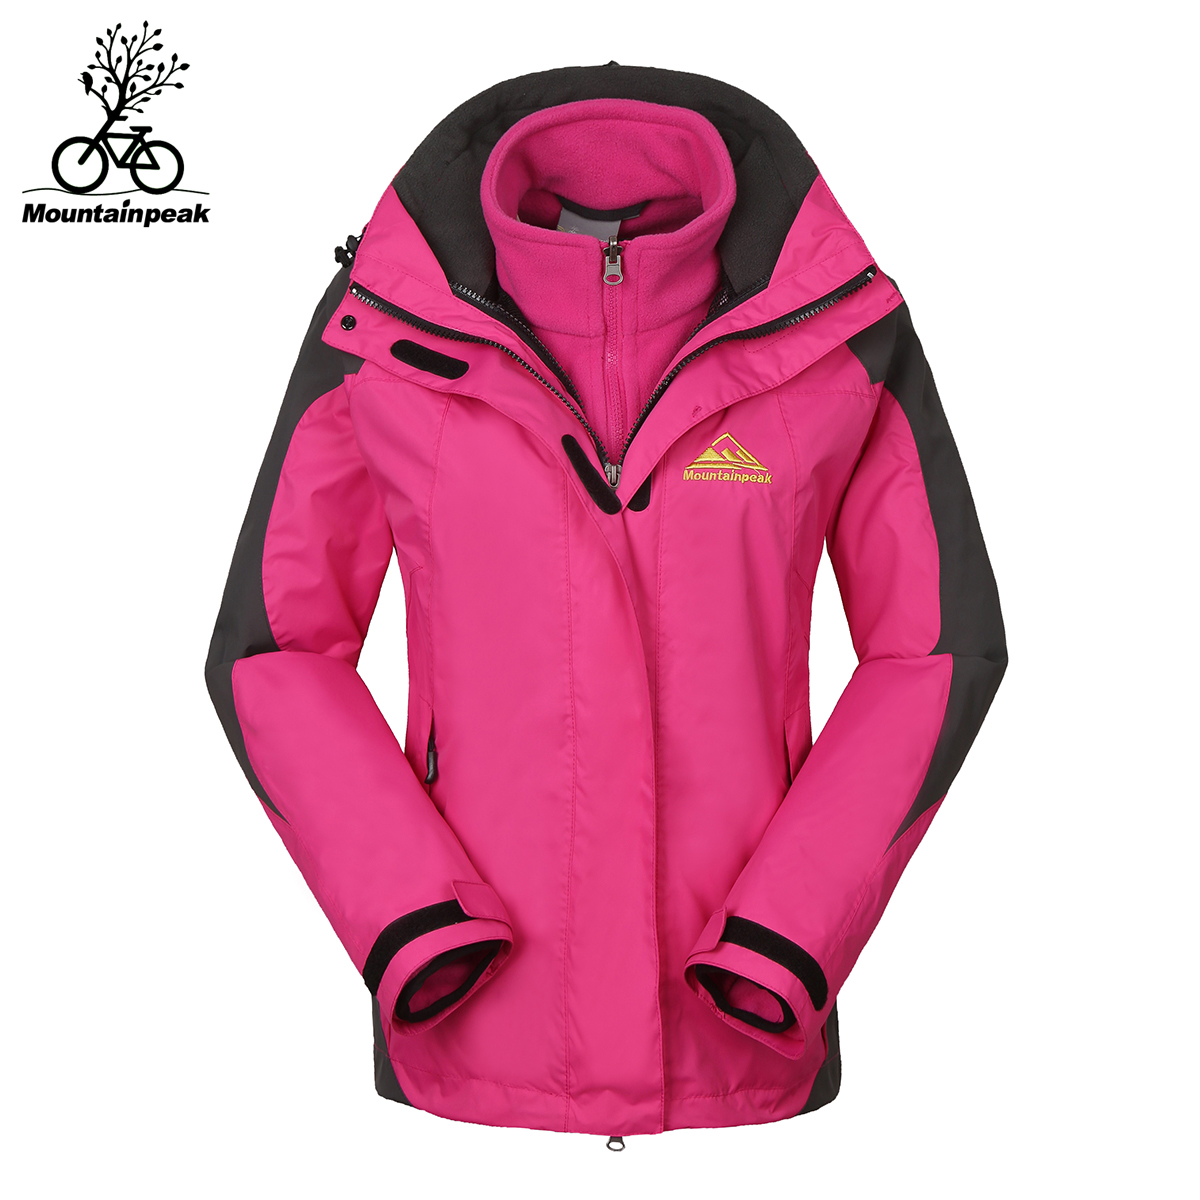 ФОТО Mountainpeak 4 color waterproof outdoor clothing two-piece women wear to keep warm air autumn winter snow riding jacket